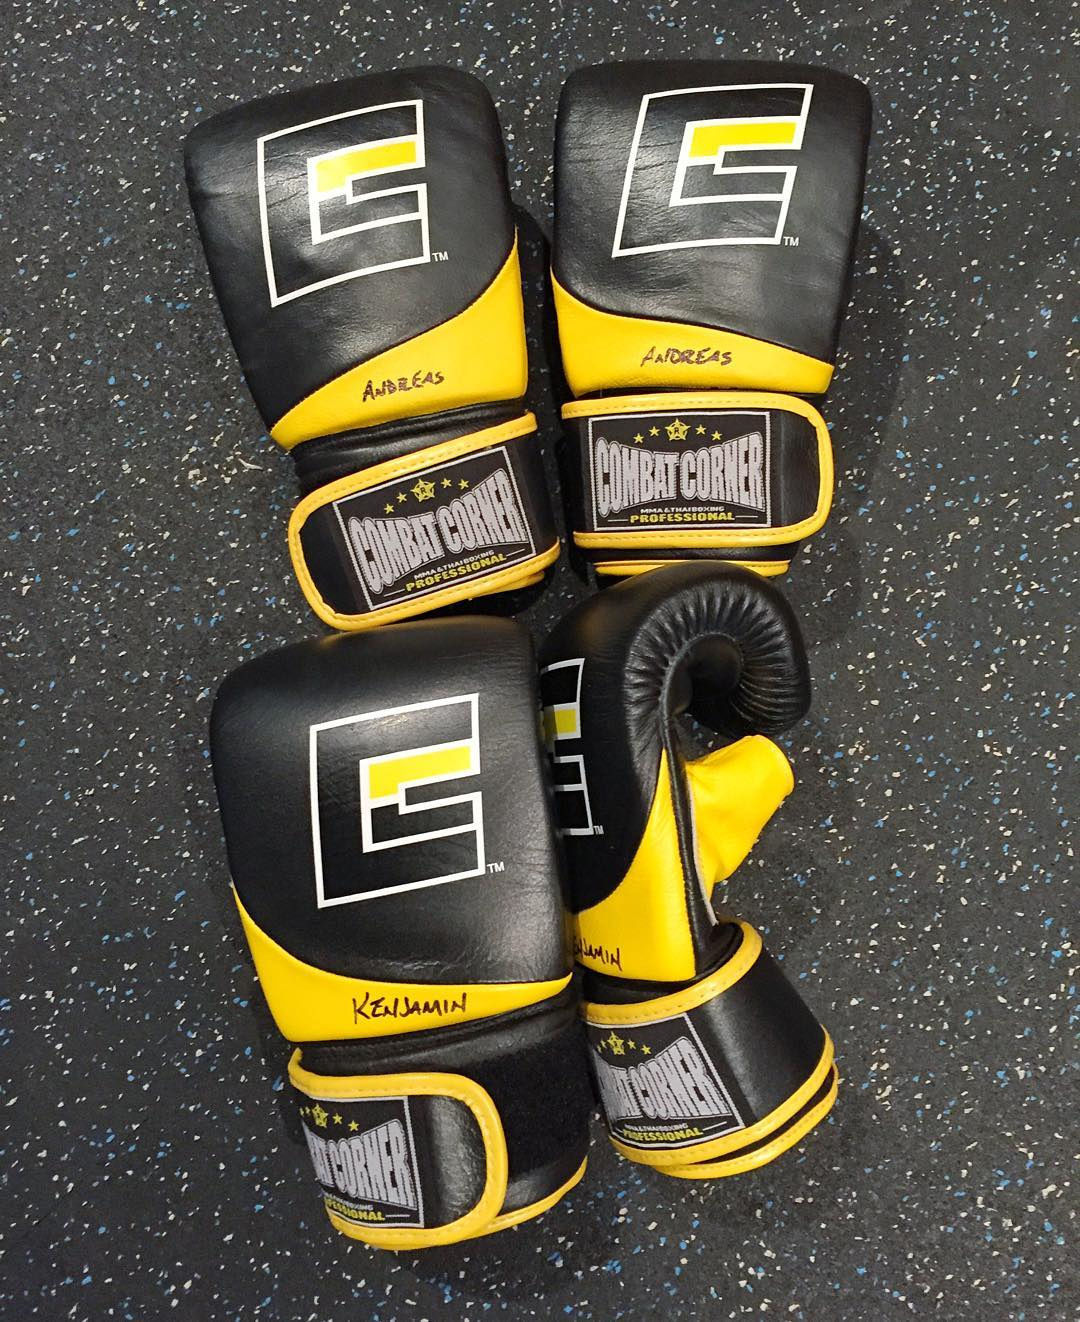 Thanks for the fresh punching devices, @CombatCorner! One set for me, and one set for Mr. @AndreasBakkerud. Time to break these in with the guidance of our trainer @KitCope. #preseasontraining #notreadmillsinsight